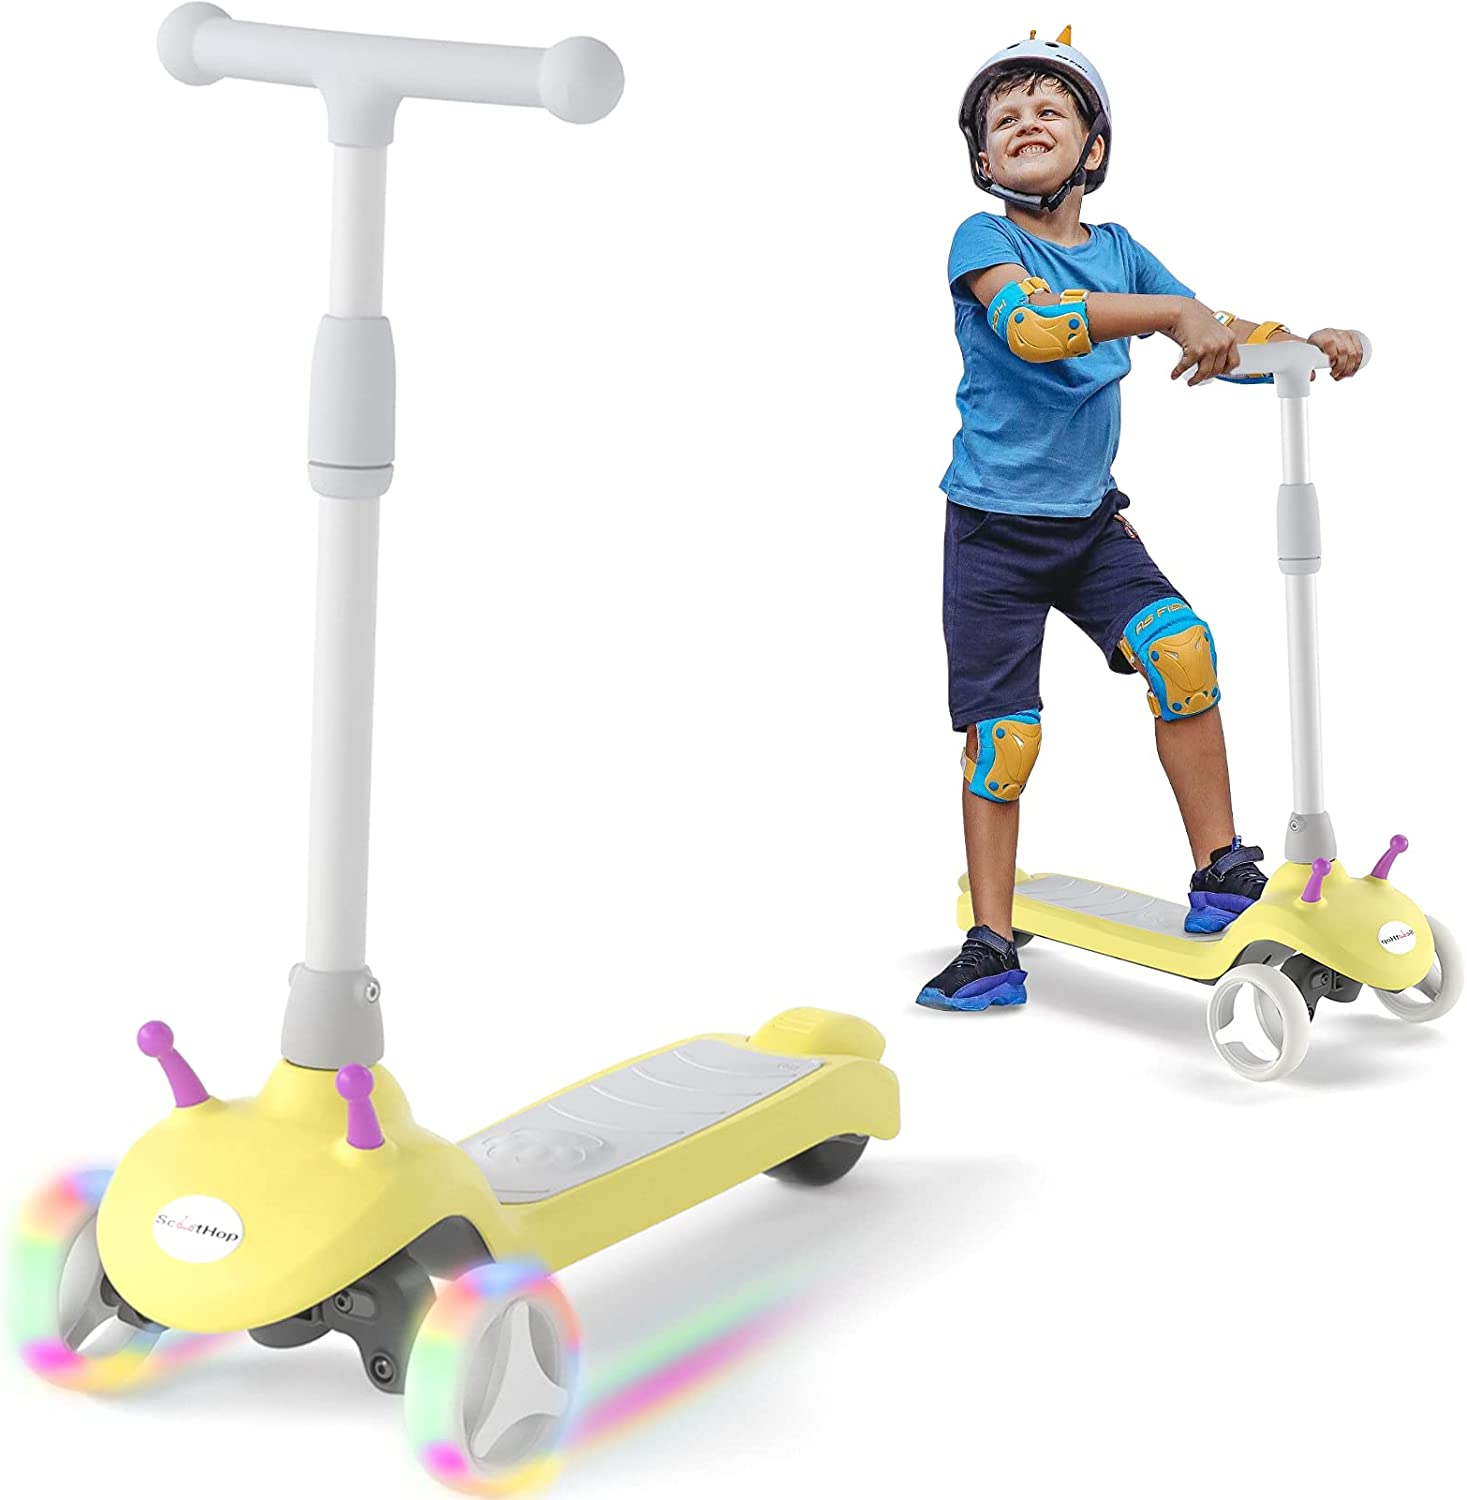 ScootHop Electric Wholesale Scooter for Under blast sales Kids an Ages 2-8 Kick-Start Boost